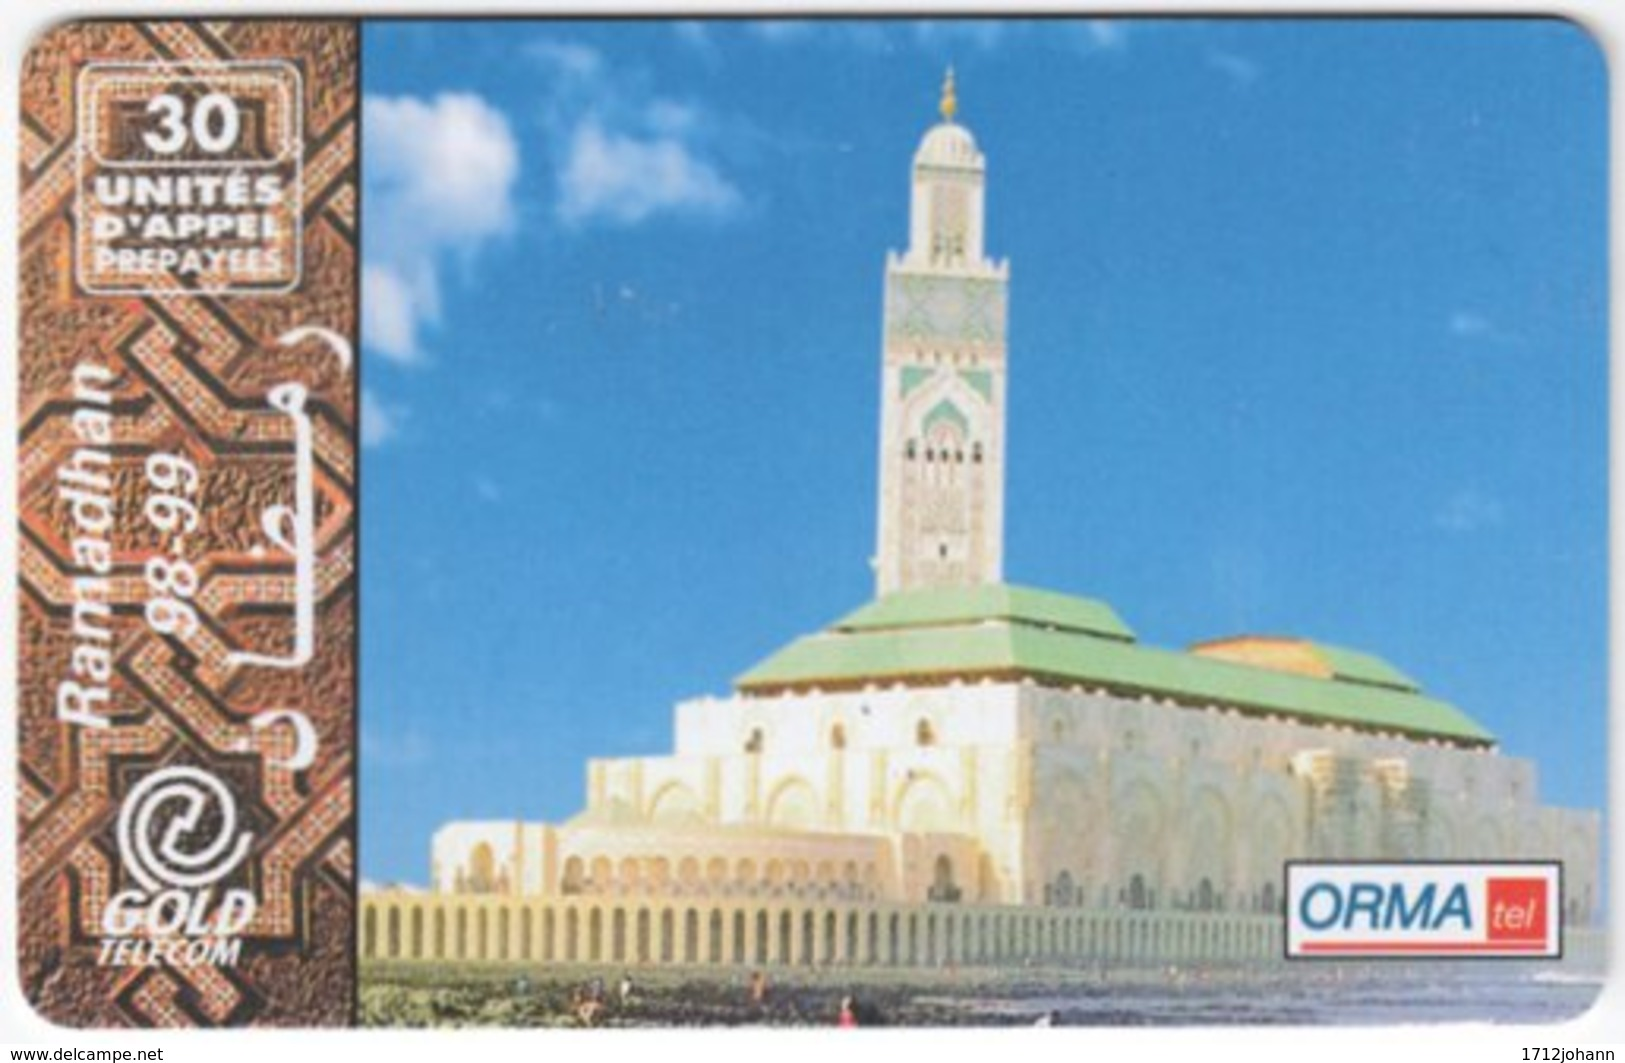 FRANCE C-519 Prepaid ORMA - Architecture, Monumental Building - Used - Frankreich